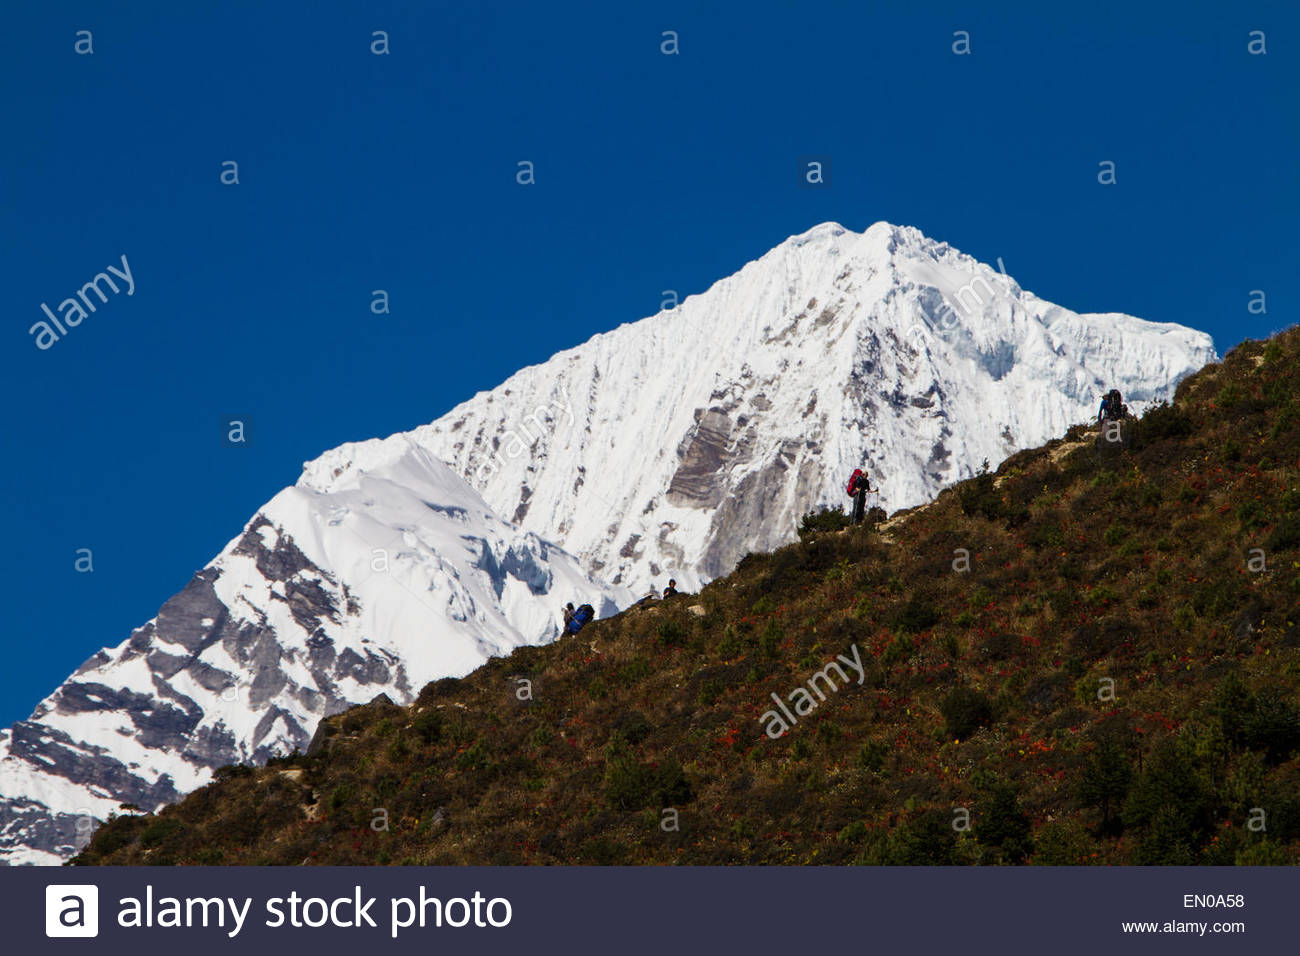 Trekkers in Nepal's Himalayas are seen along an uphill ridgeline with a snow capped peak in the background - Stock Image